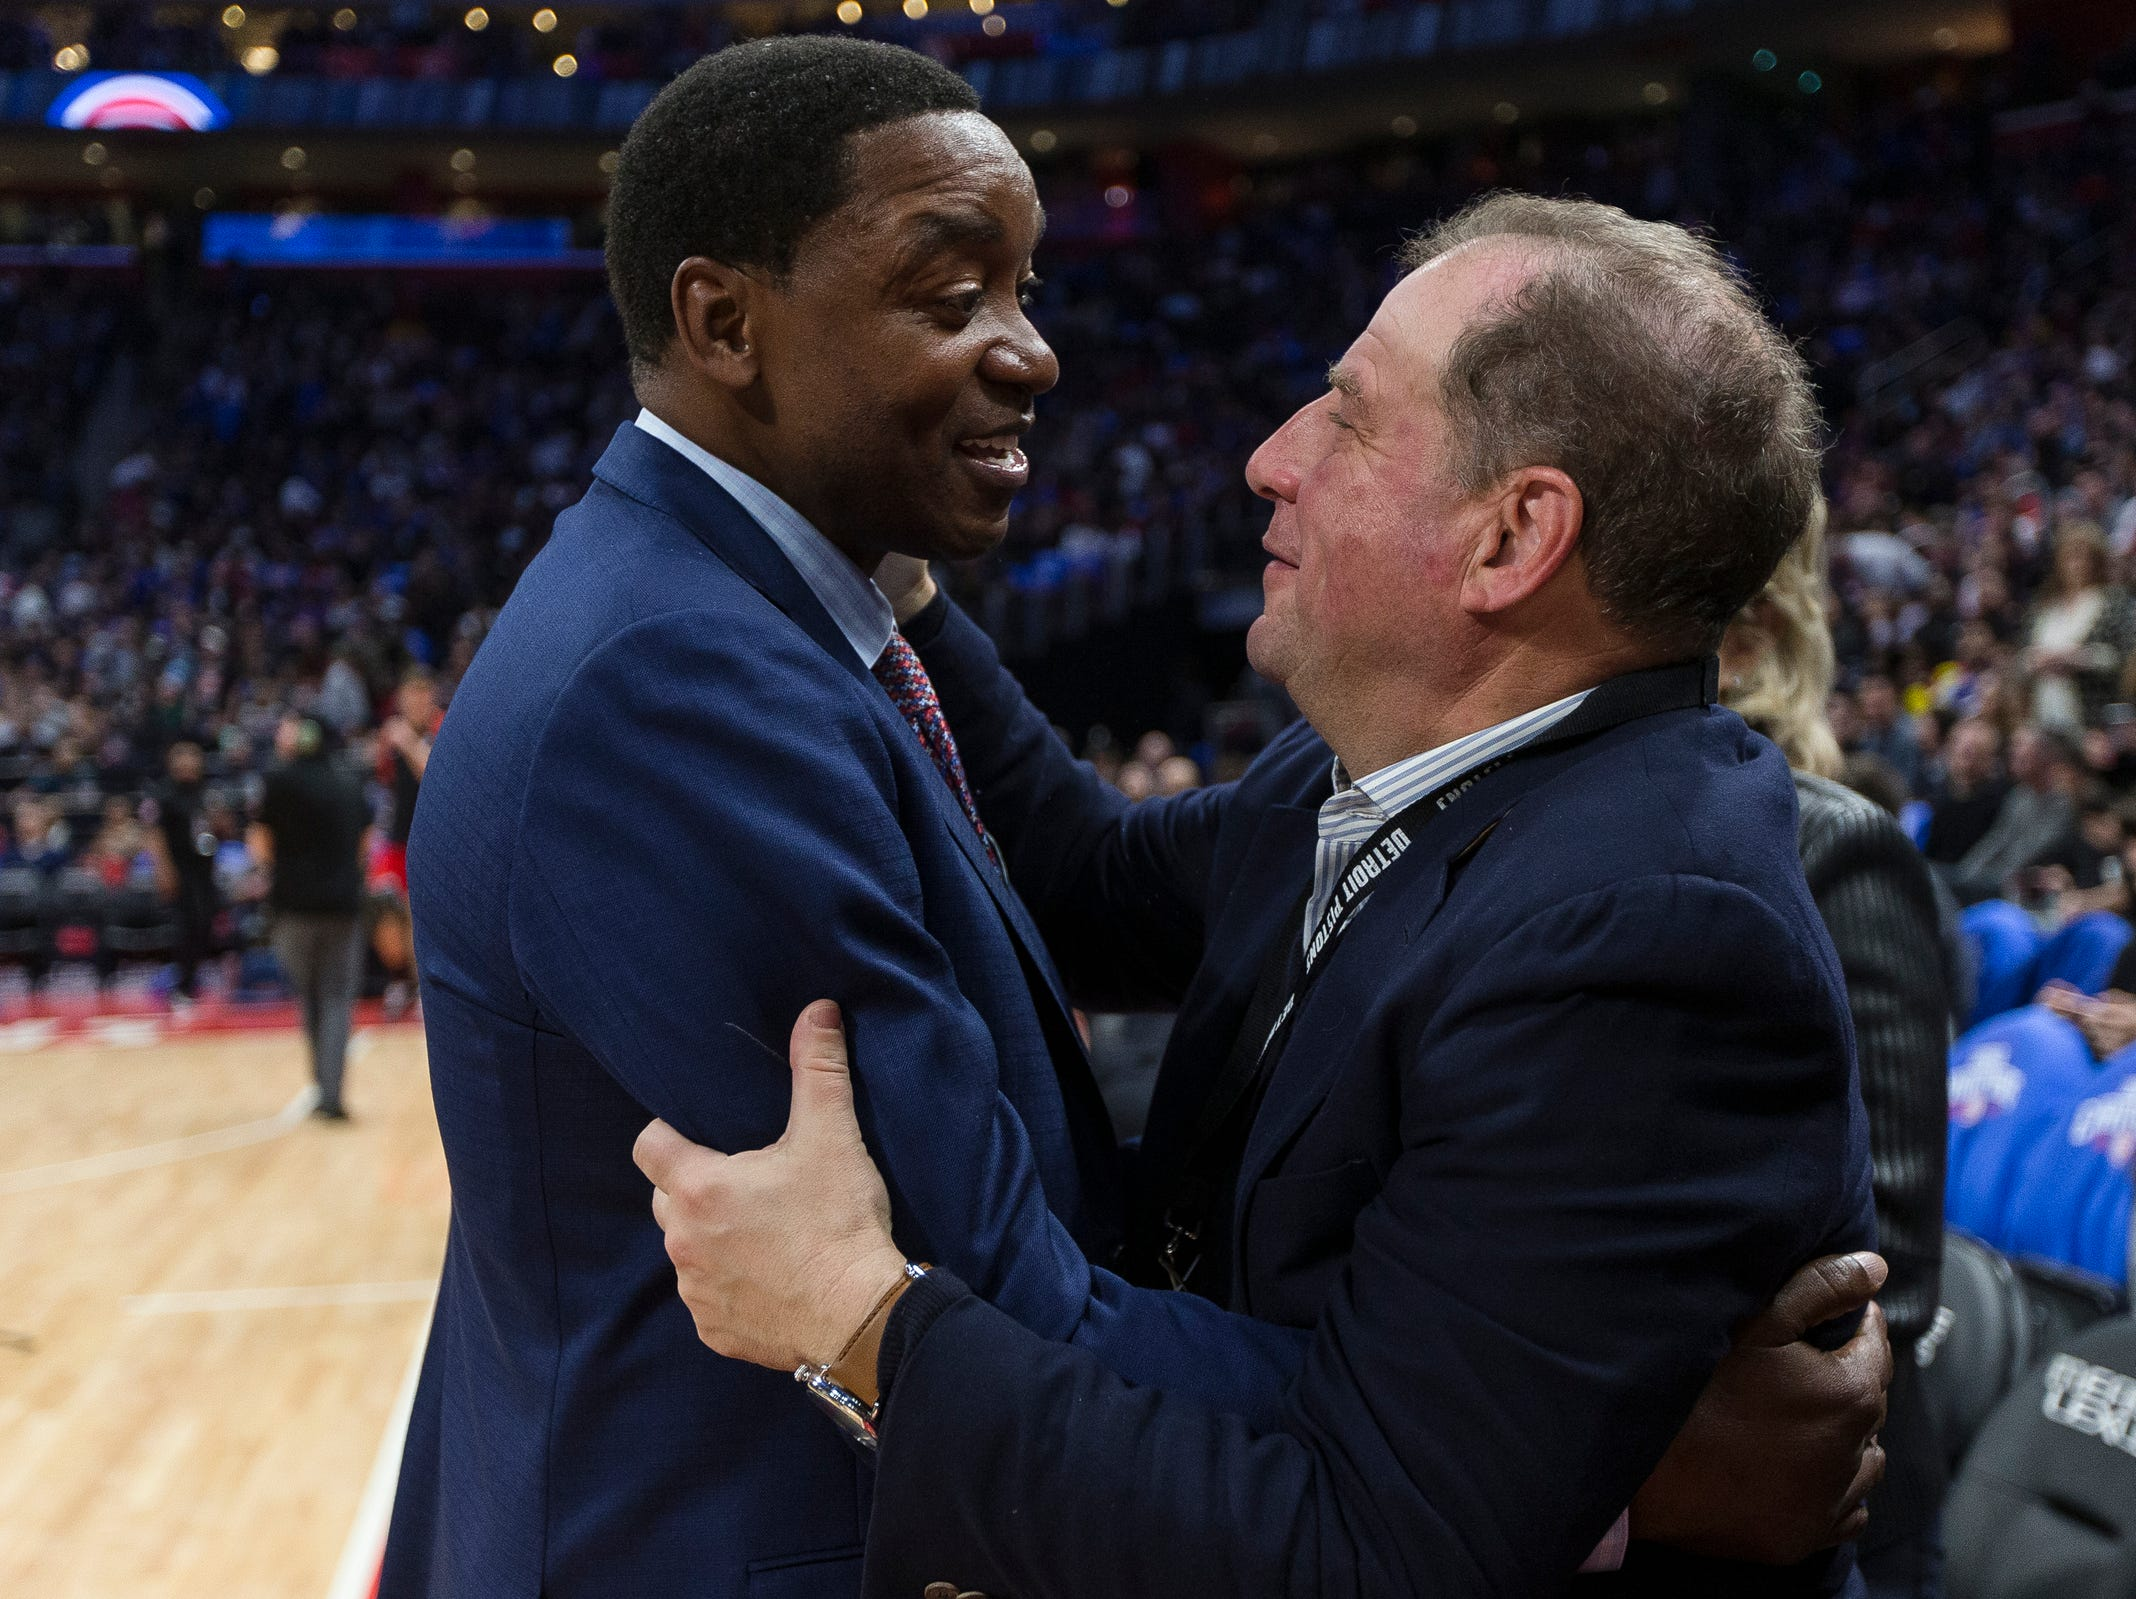 Isiah Thomas talks to Arn Tellem, Pistons' vice chairman during theÊcelebration for the Bad Boys' 30th anniversary of the 1989-90 back-to-back championships at the Little Caesars Arena in Detroit, Saturday, March 30, 2019.